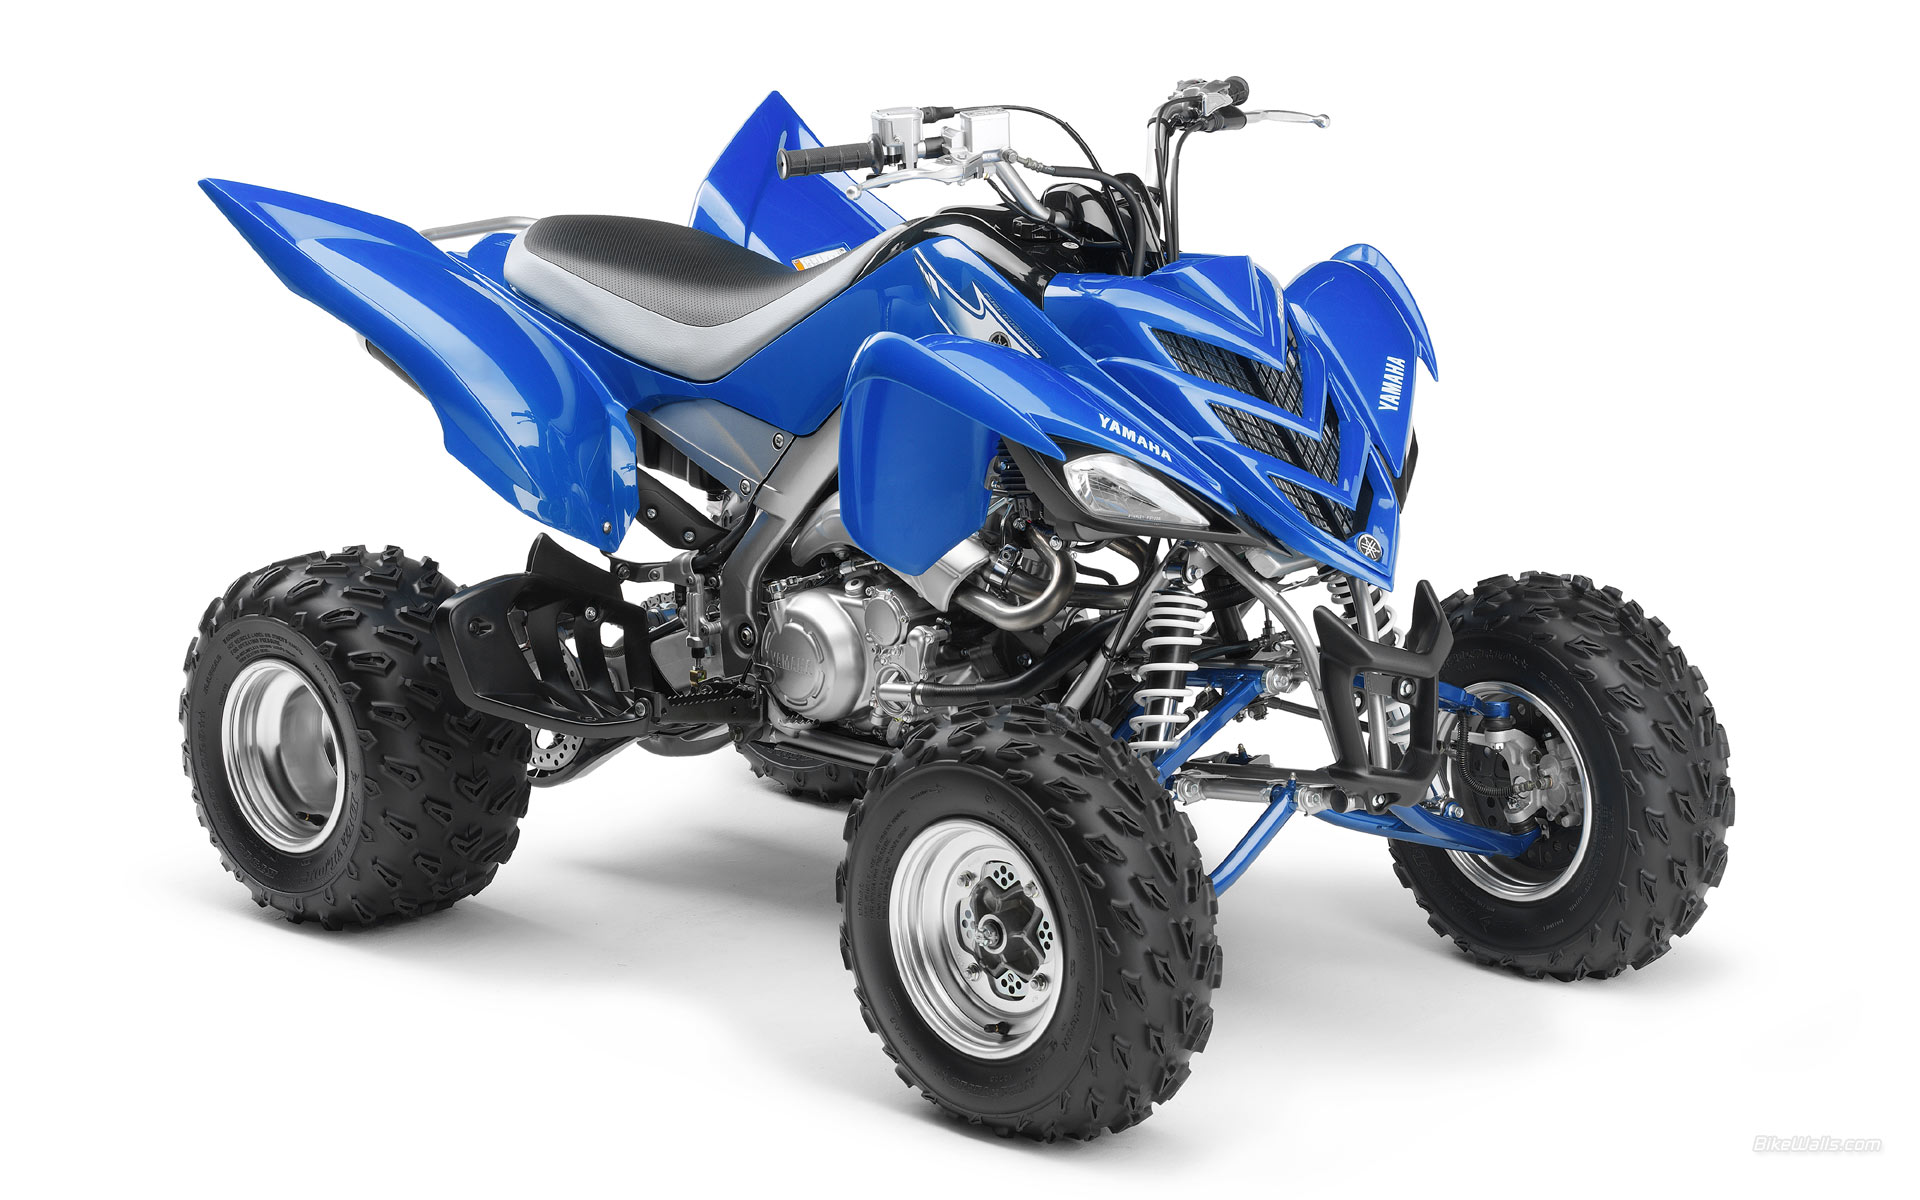 wallpaper yamaha raptor 700r next wallpaper yamaha raptor 700r 1920x1200